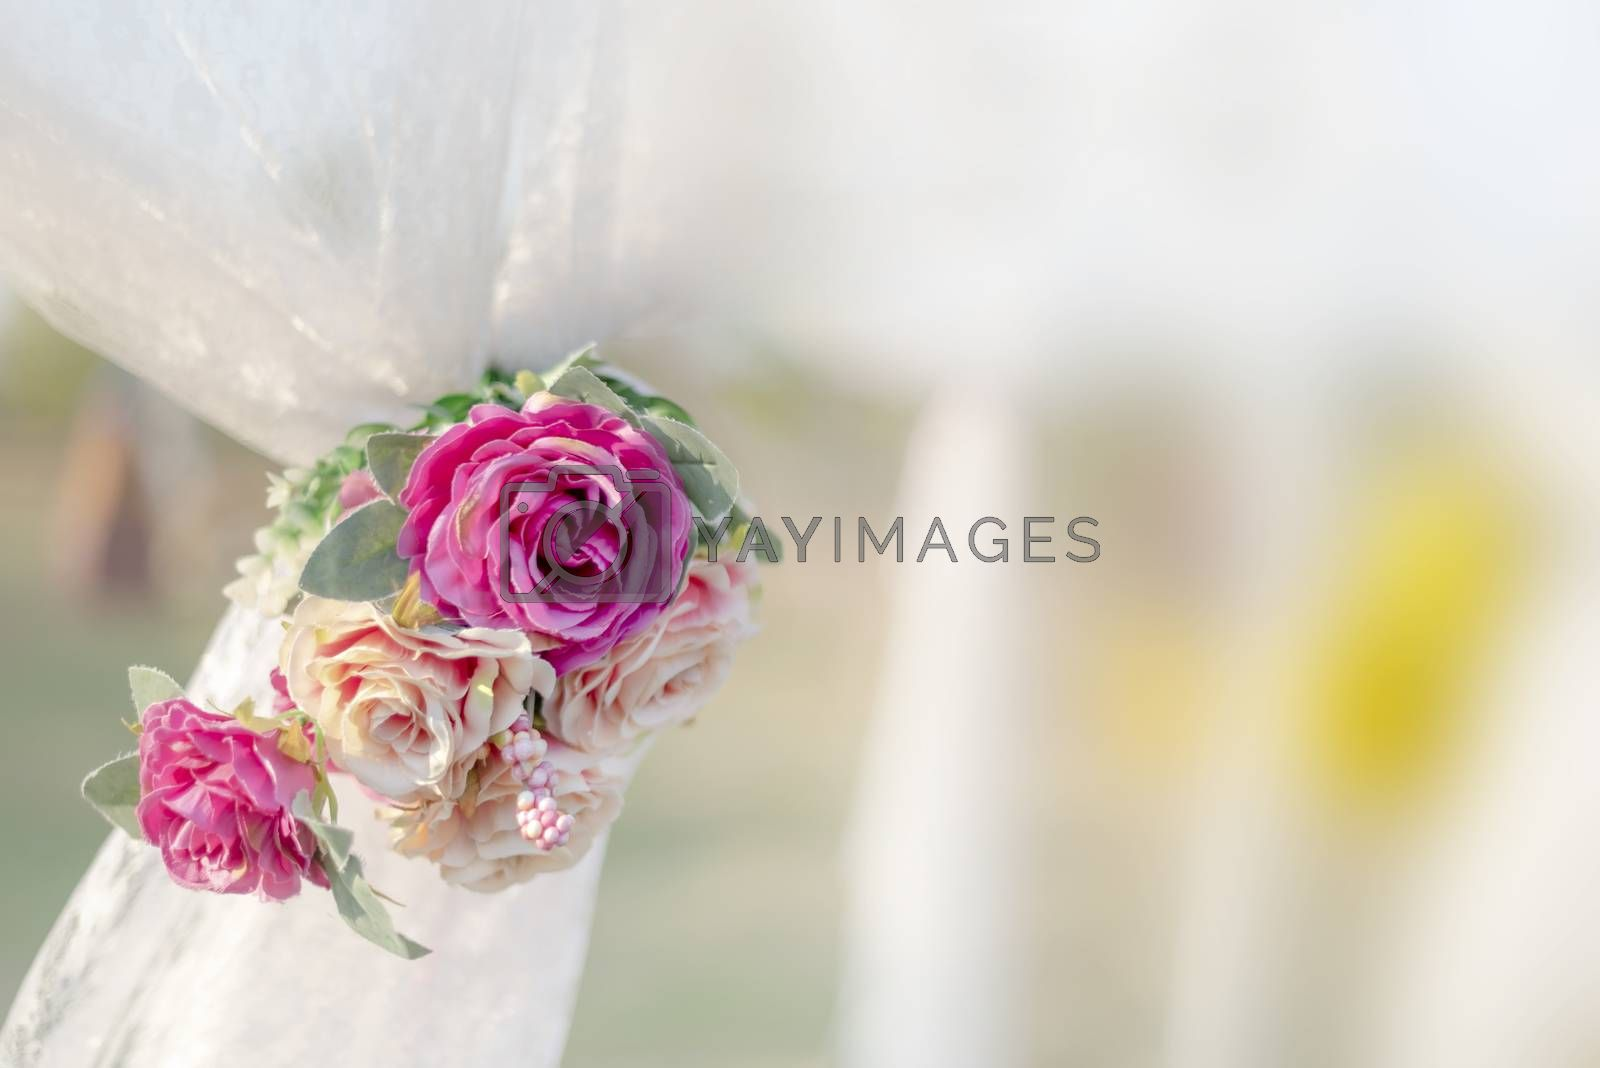 colorful of the plastic flowers bouquet , soft of focus